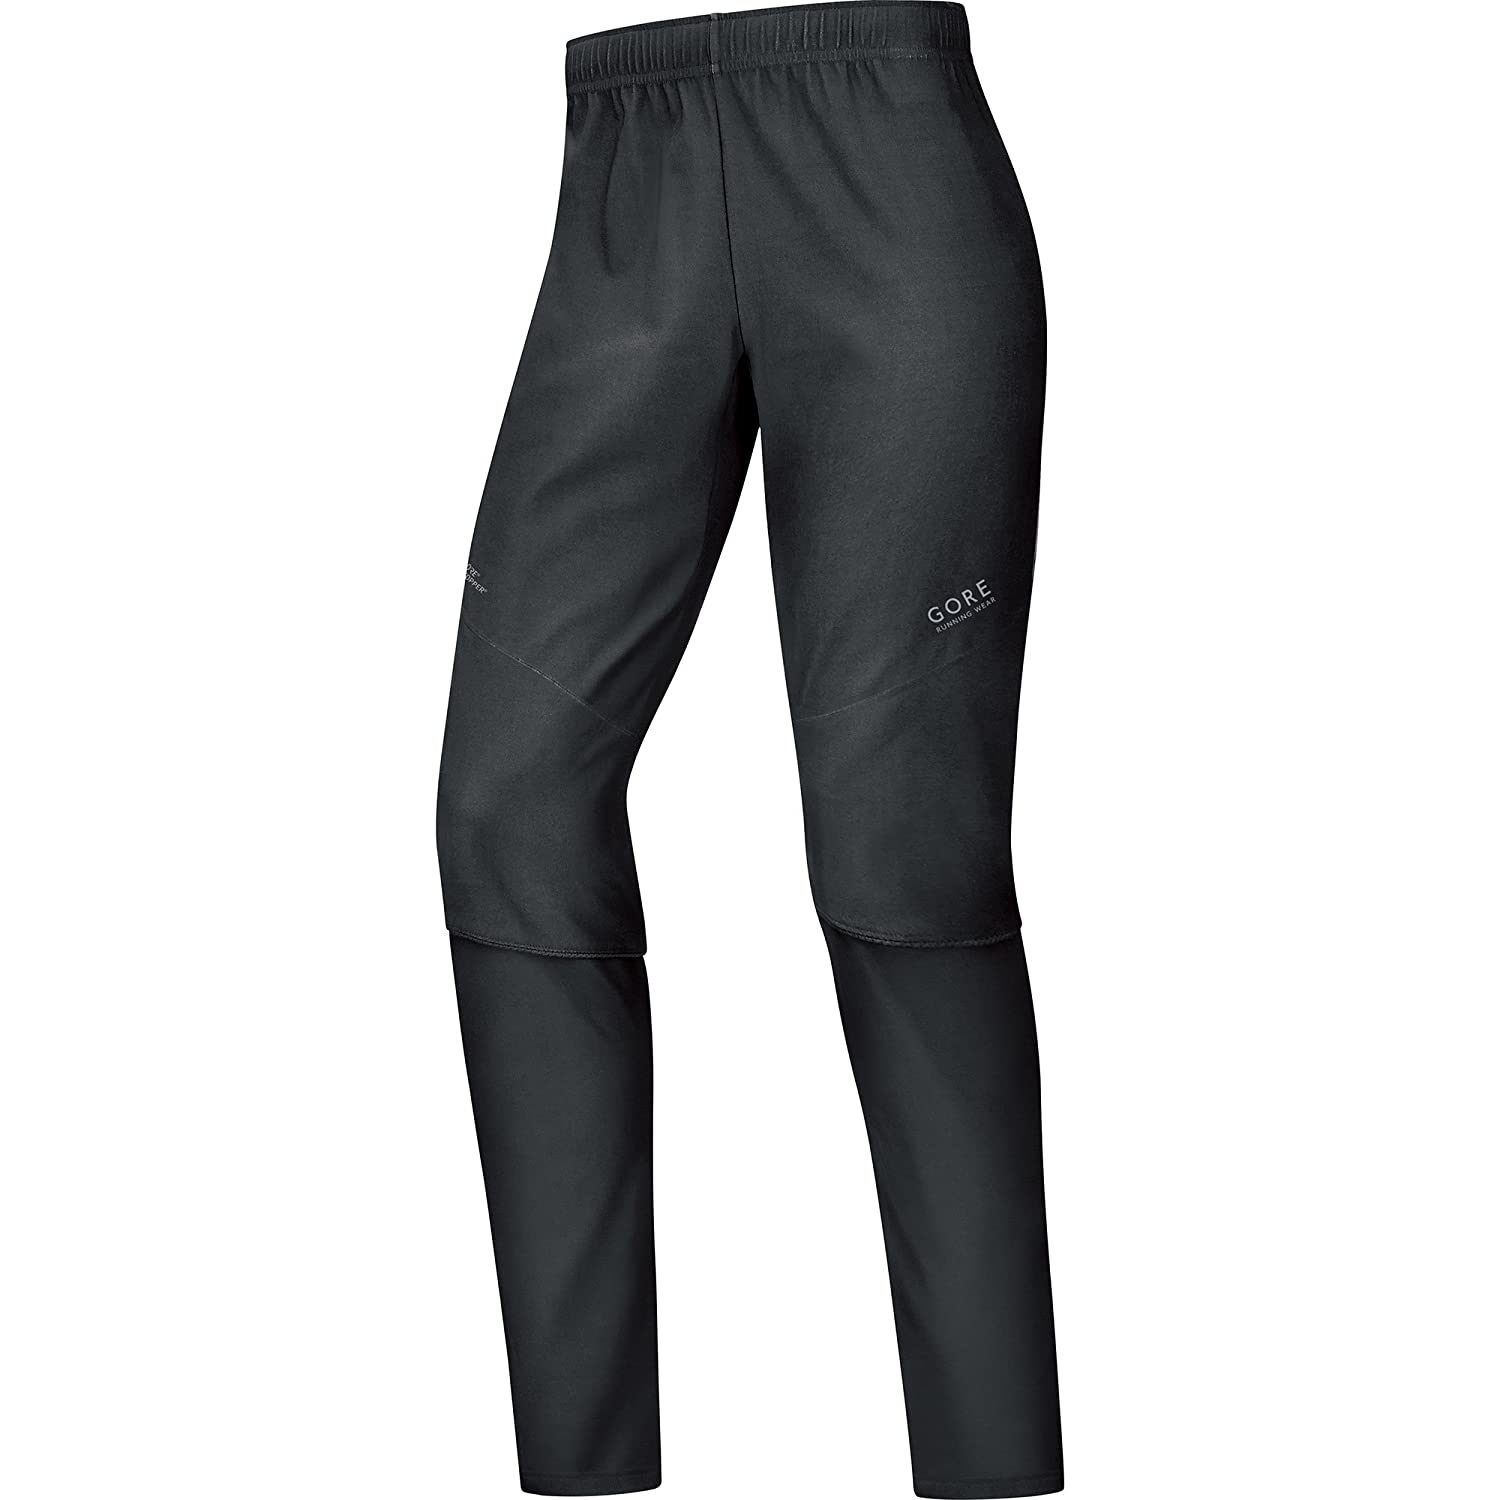 GORE RUNNING WEAR Herren Laufhose, GORE WINDSTOPPER, AIR Pants, TWAIRP GORL5|#Gore Running Wear